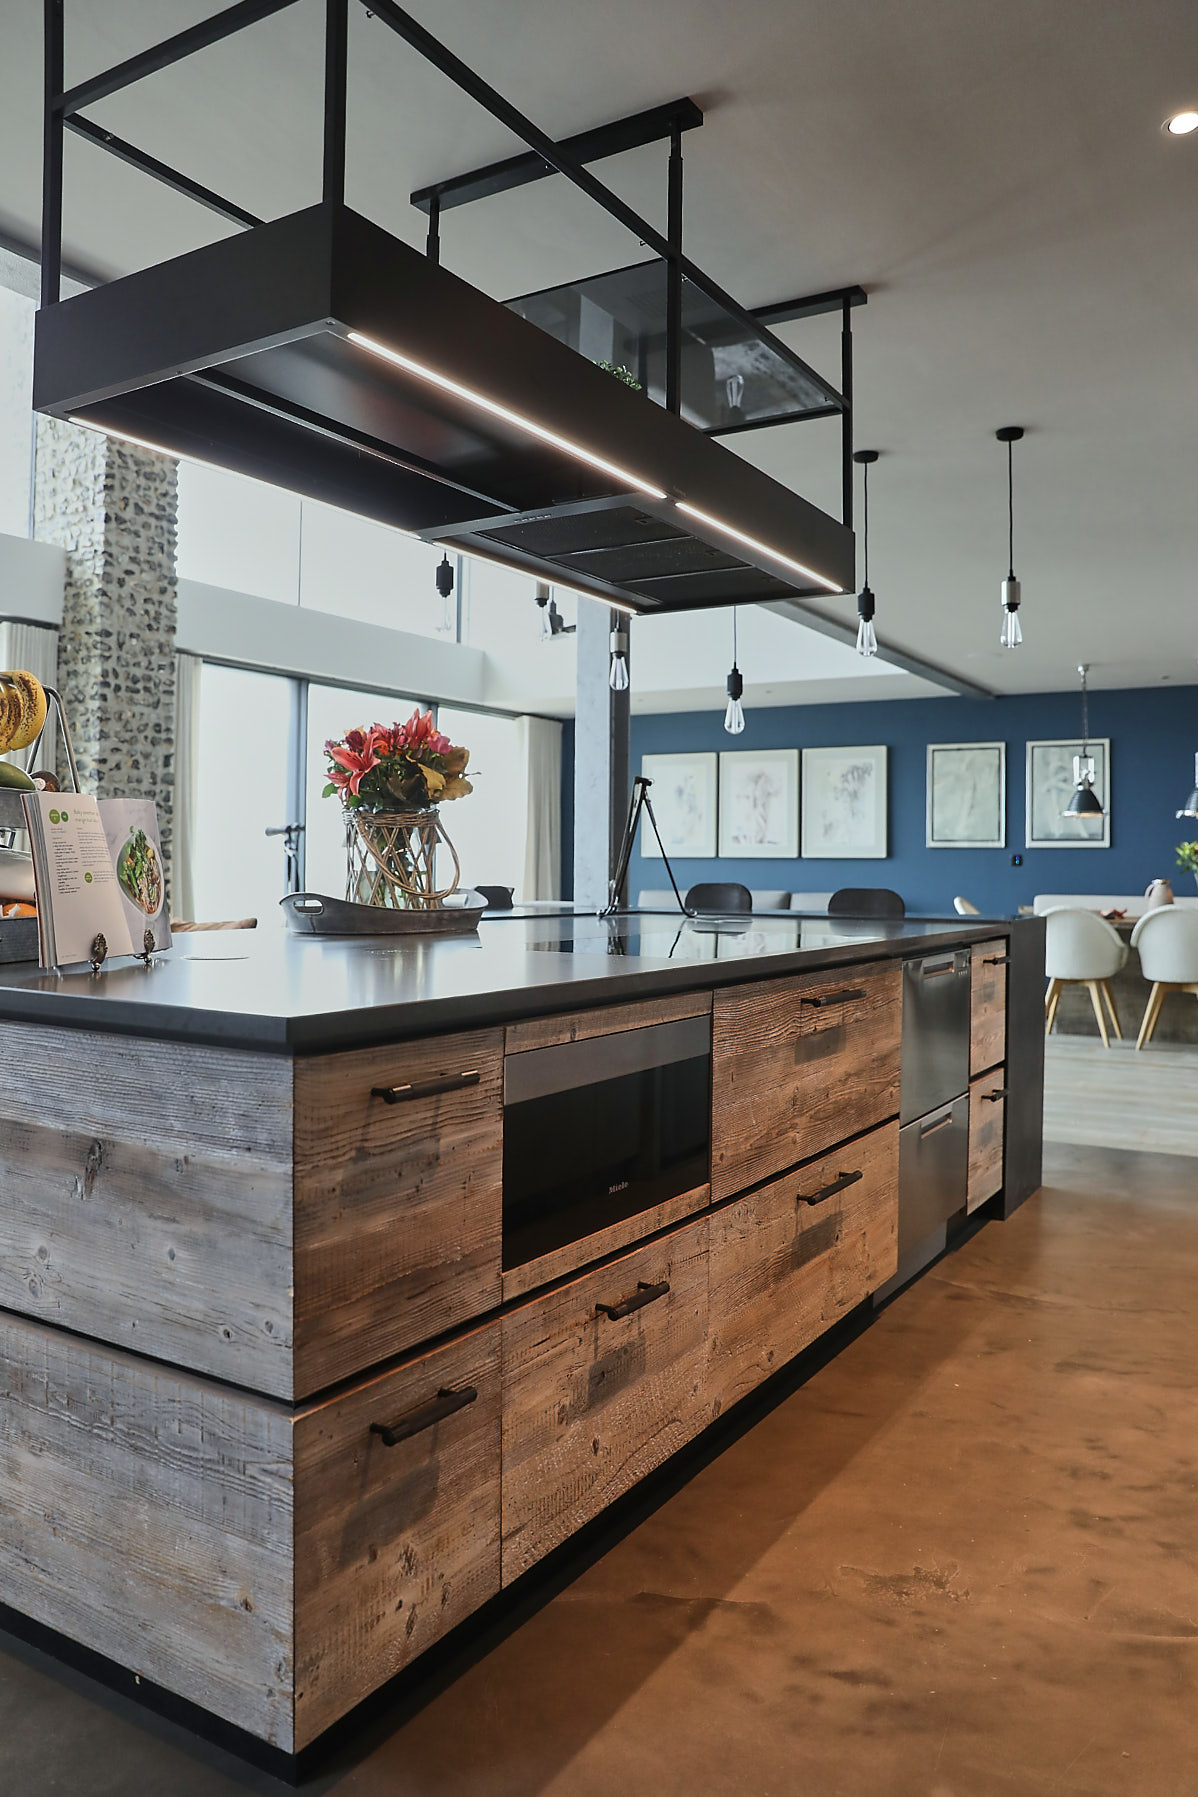 Rustic and reclaimed pine used on kitchen island